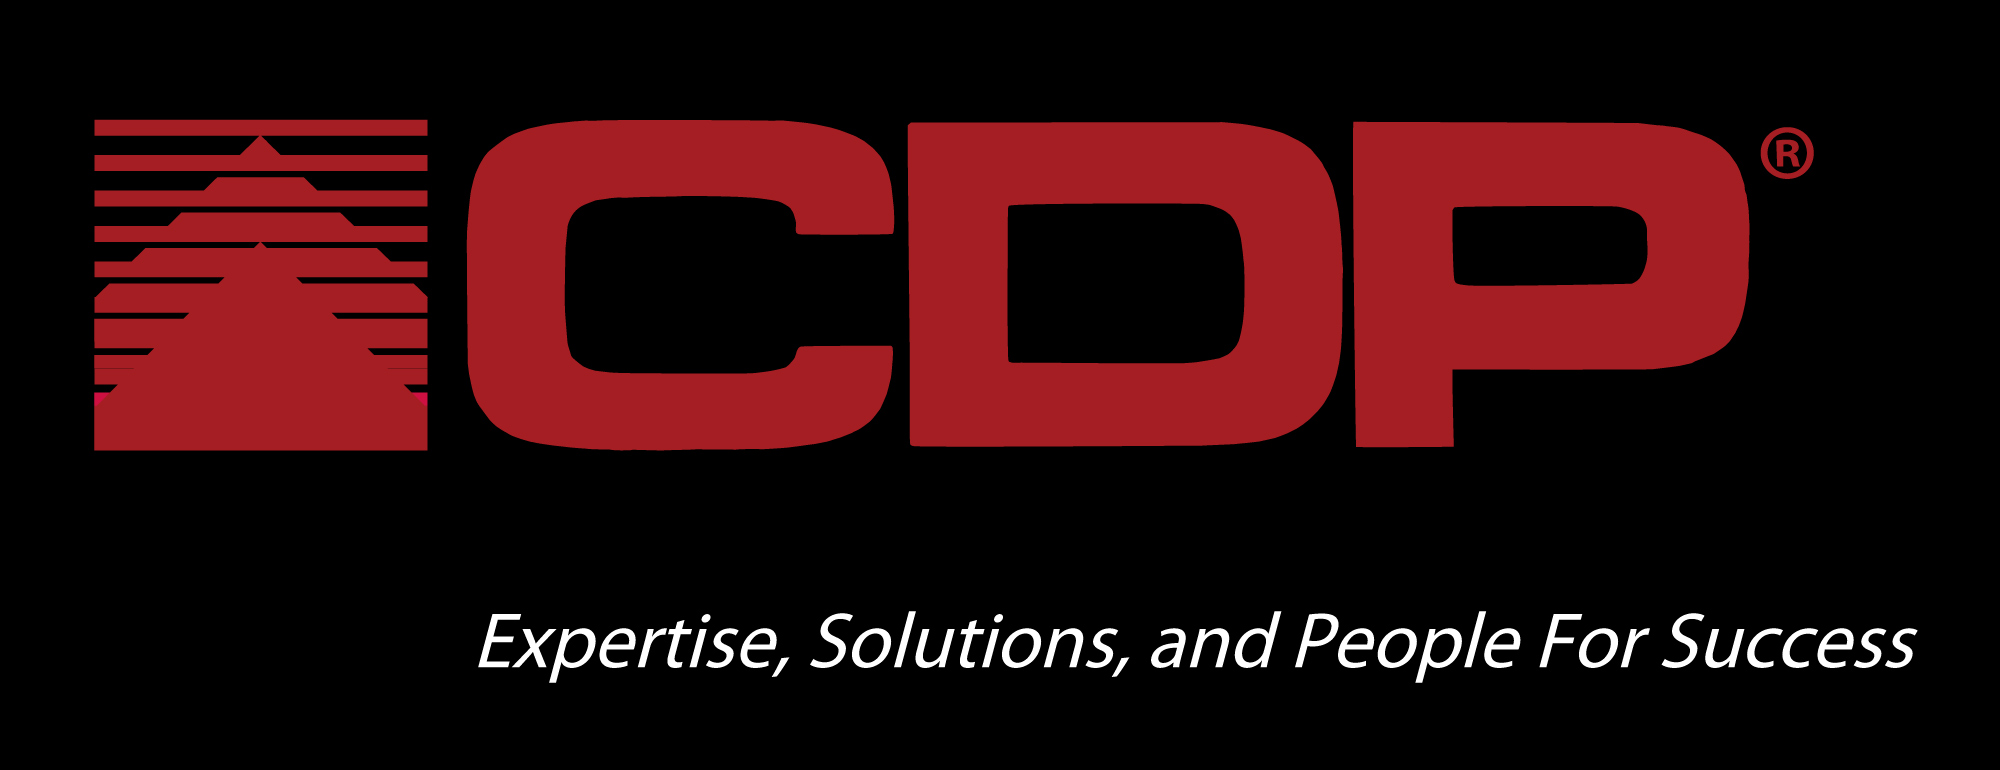 Construction cpm conference 2019 learn how to calculate schedule dates and total float with activity constraints presented by mike hughes of cdp biocorpaavc Images